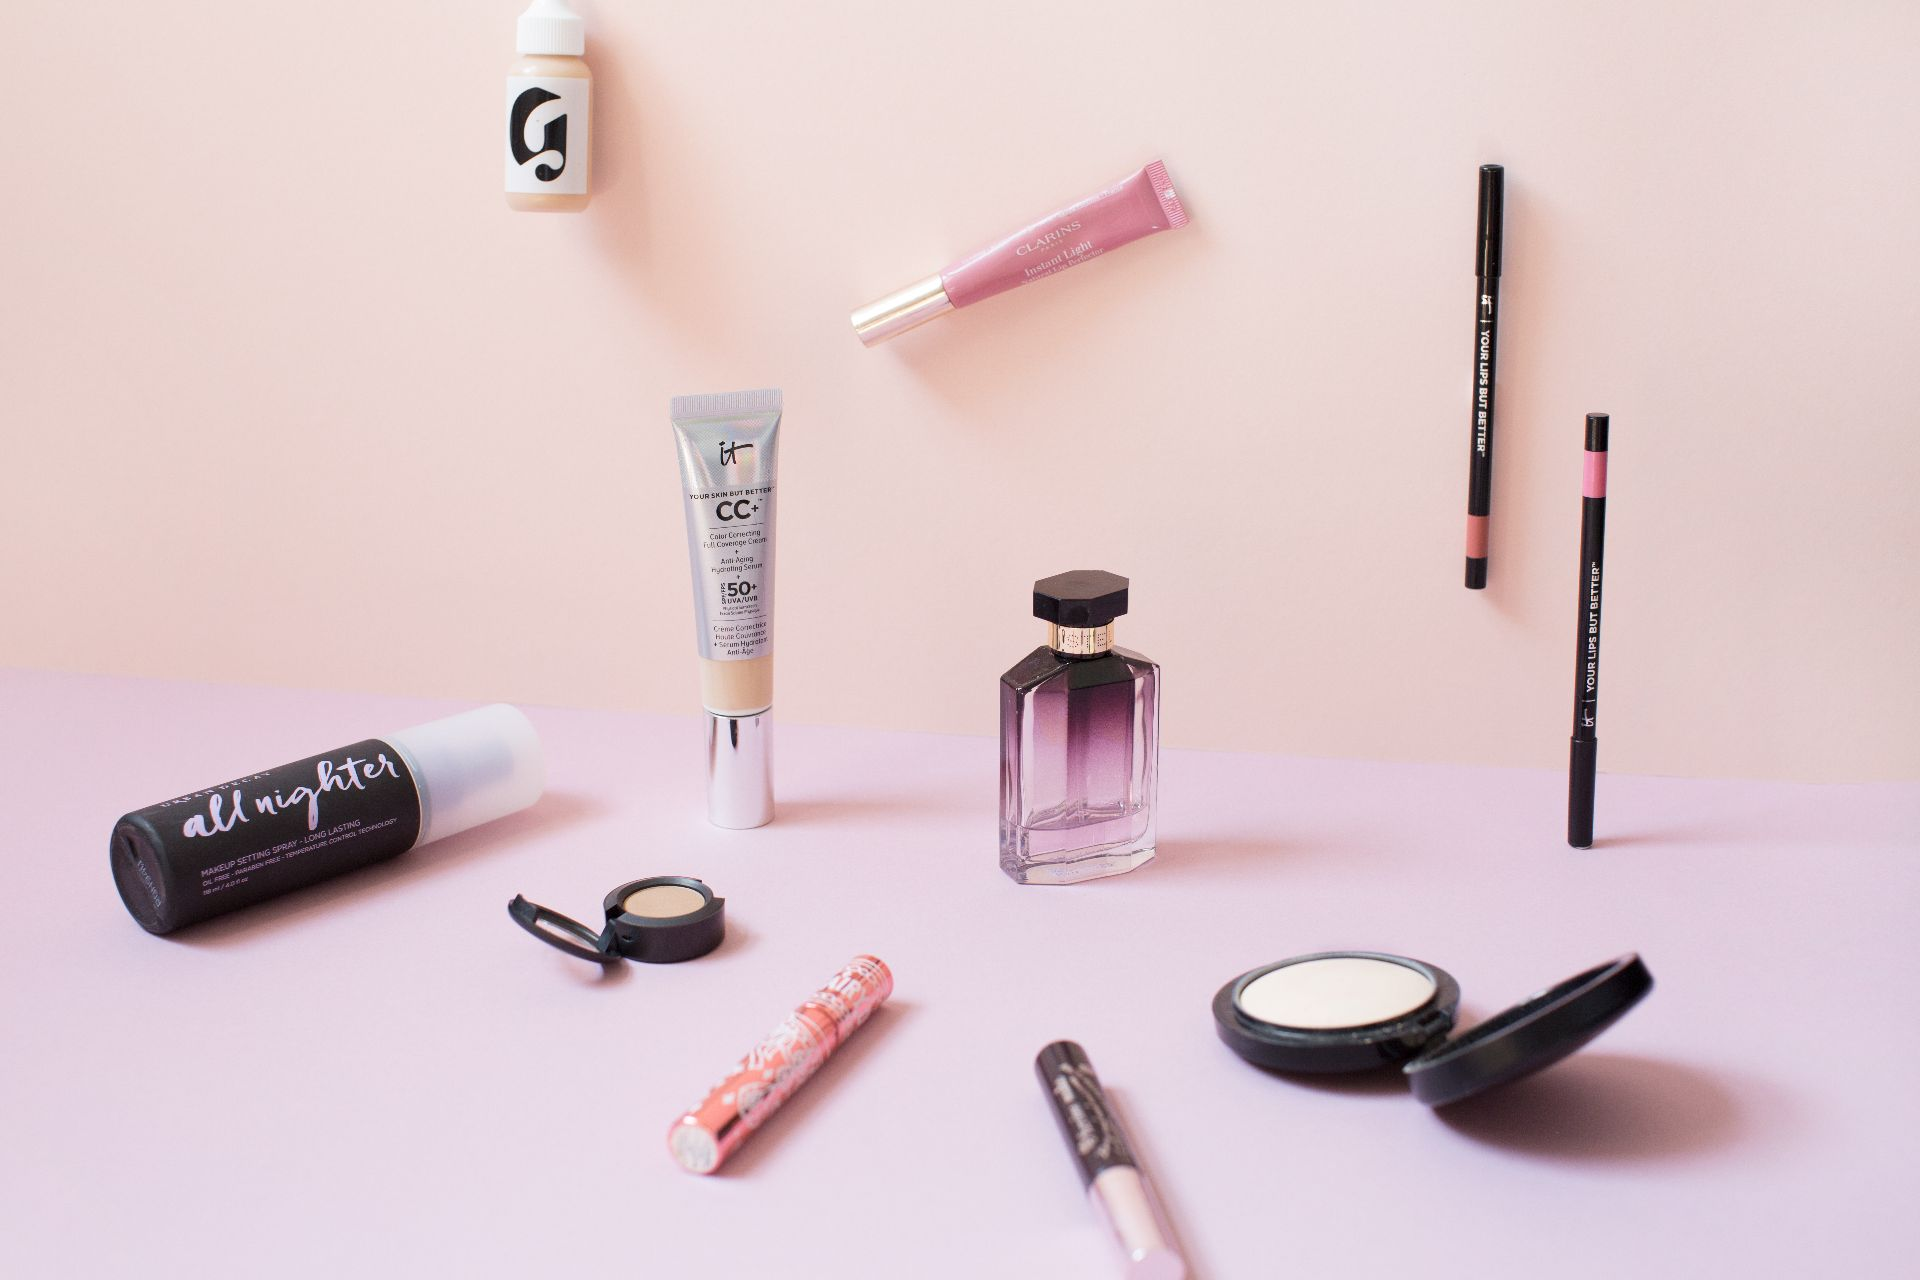 theannaedit-sumer-makeup-favourites-glossier-stella-mccartney-urban-decay-sweatproof-june-2017-3